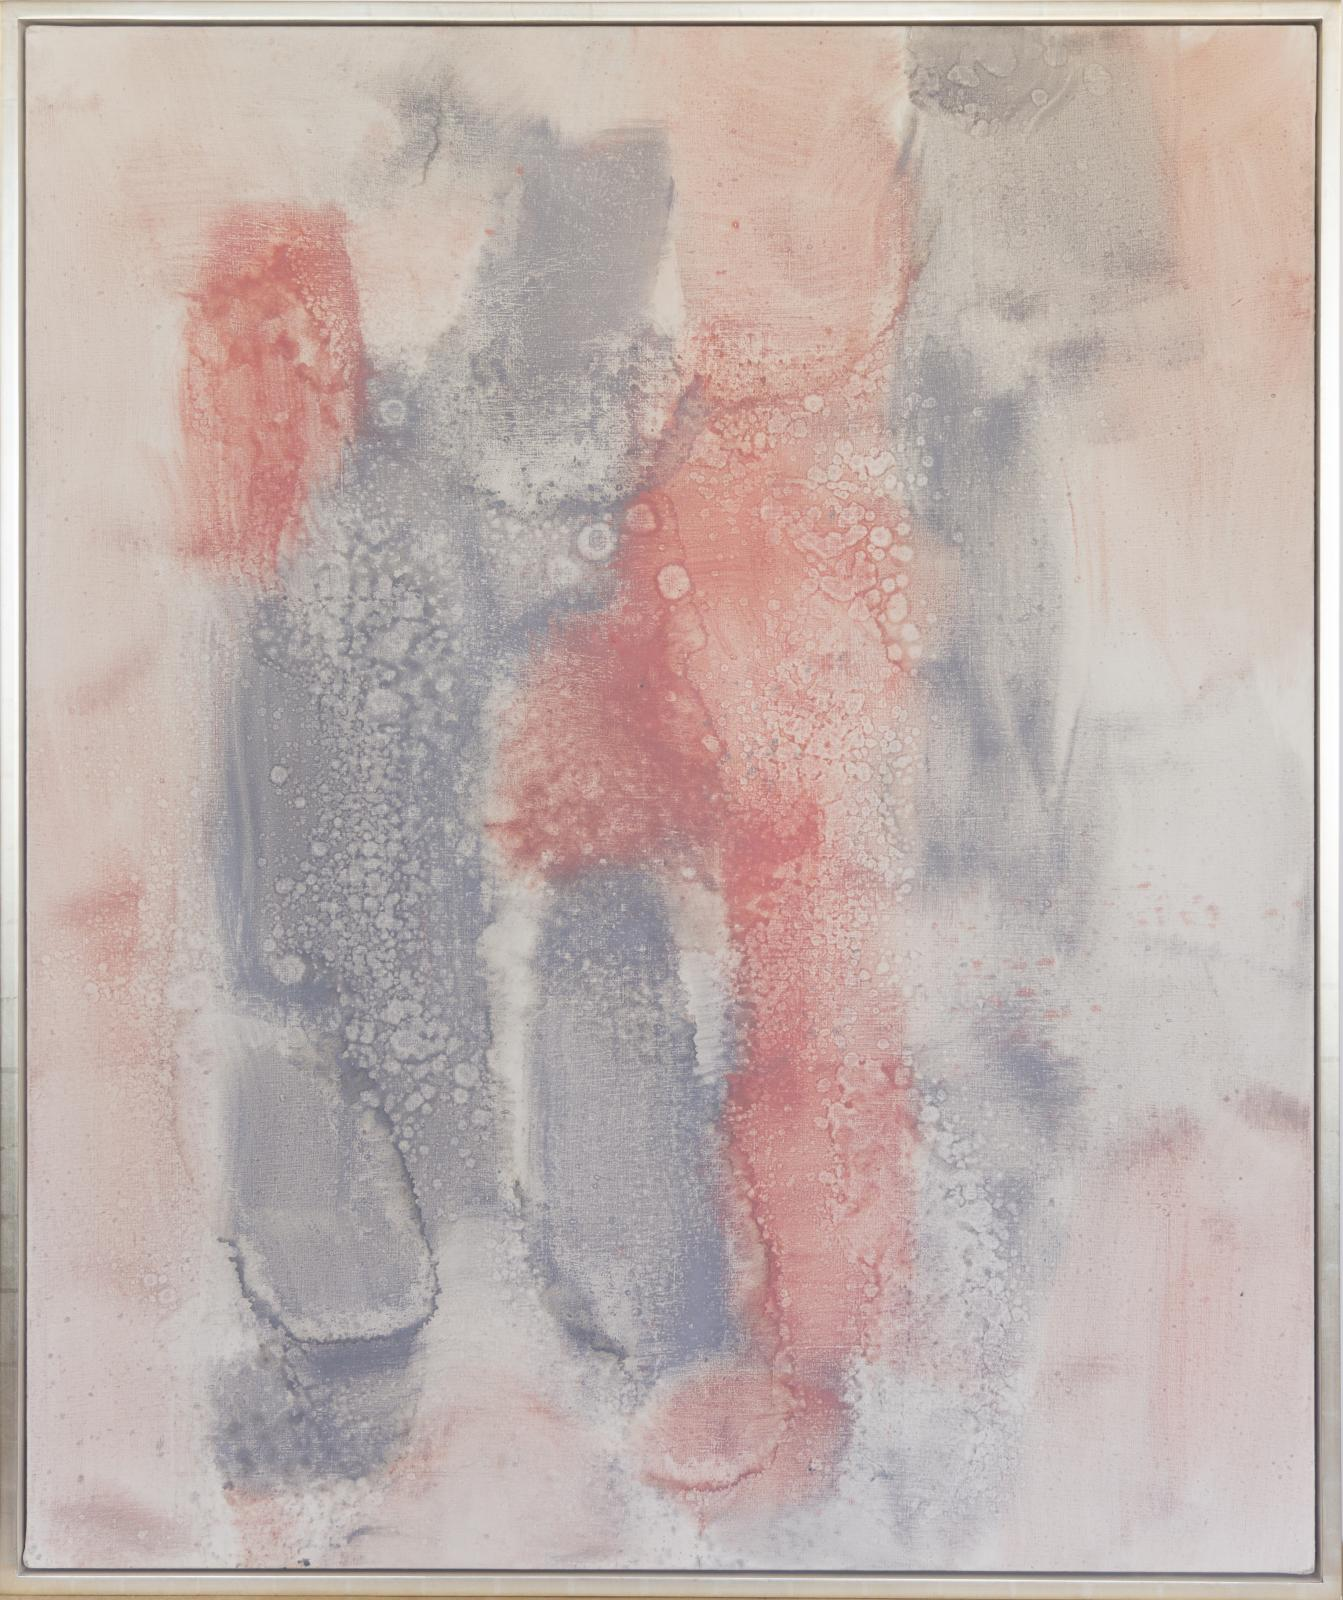 Untitled (Red, Gray) #3